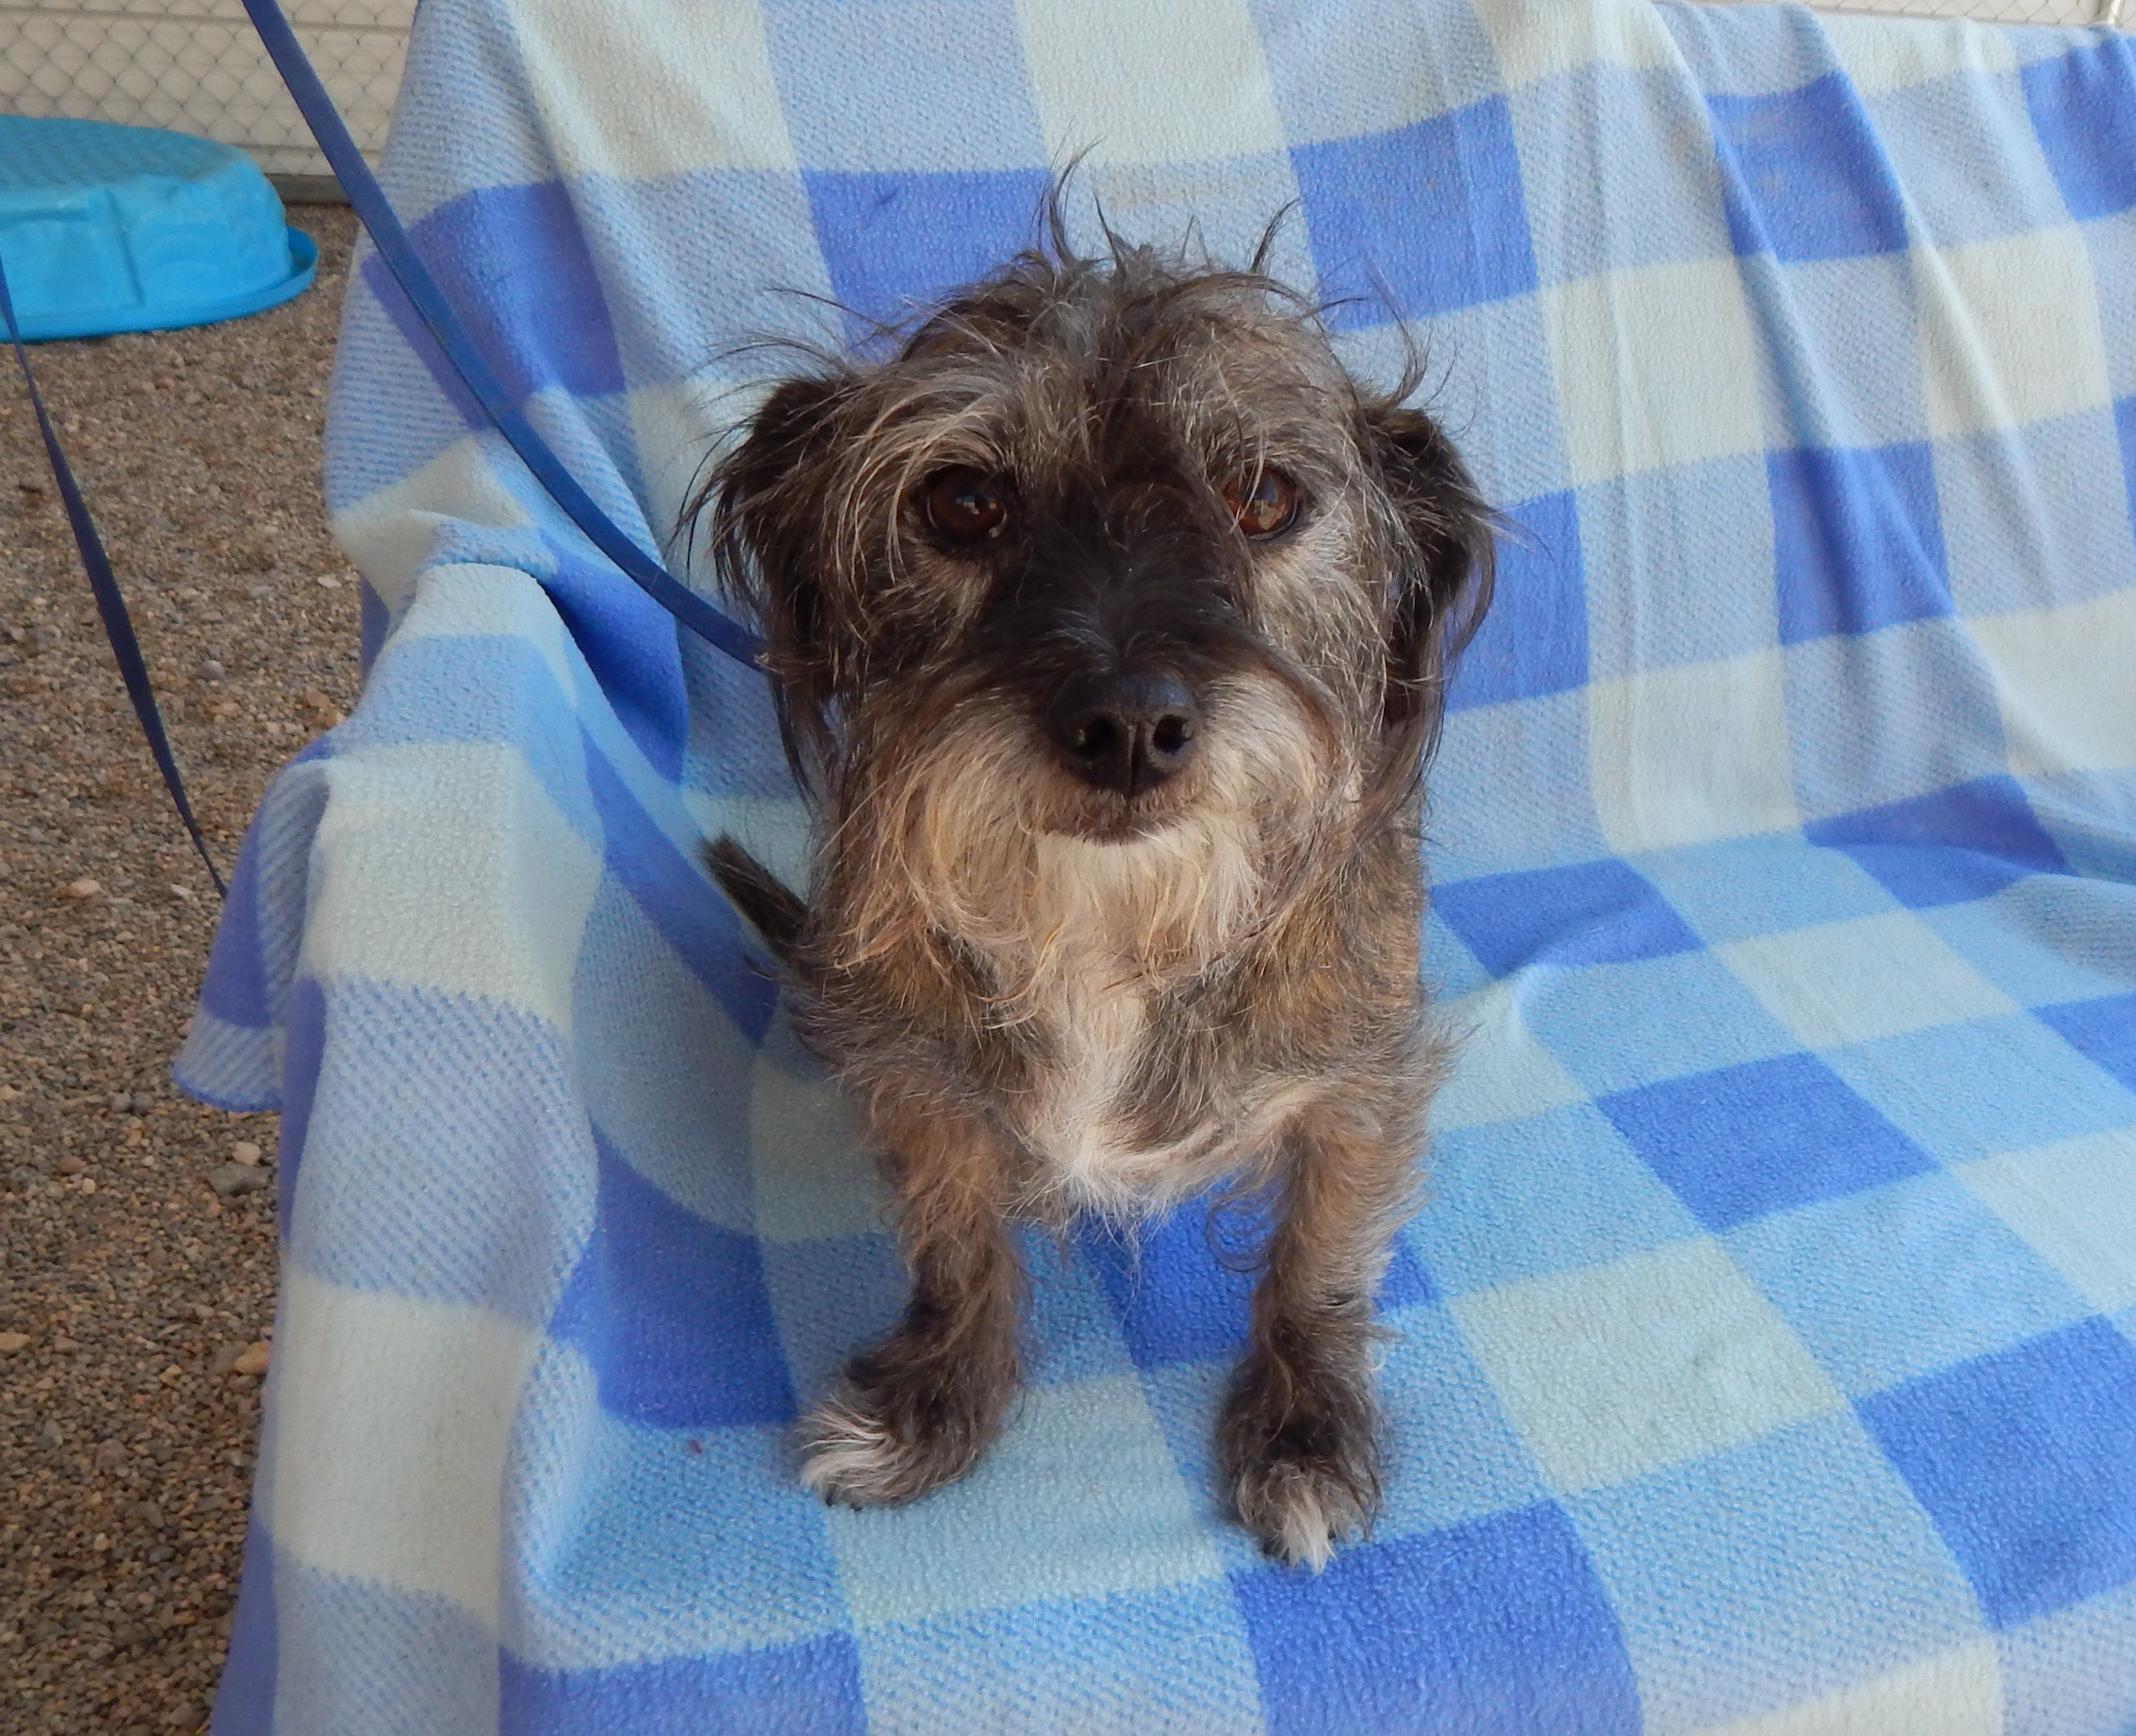 Adopt Indy on Terrier mix dogs, Animal shelter, Lhasa apso